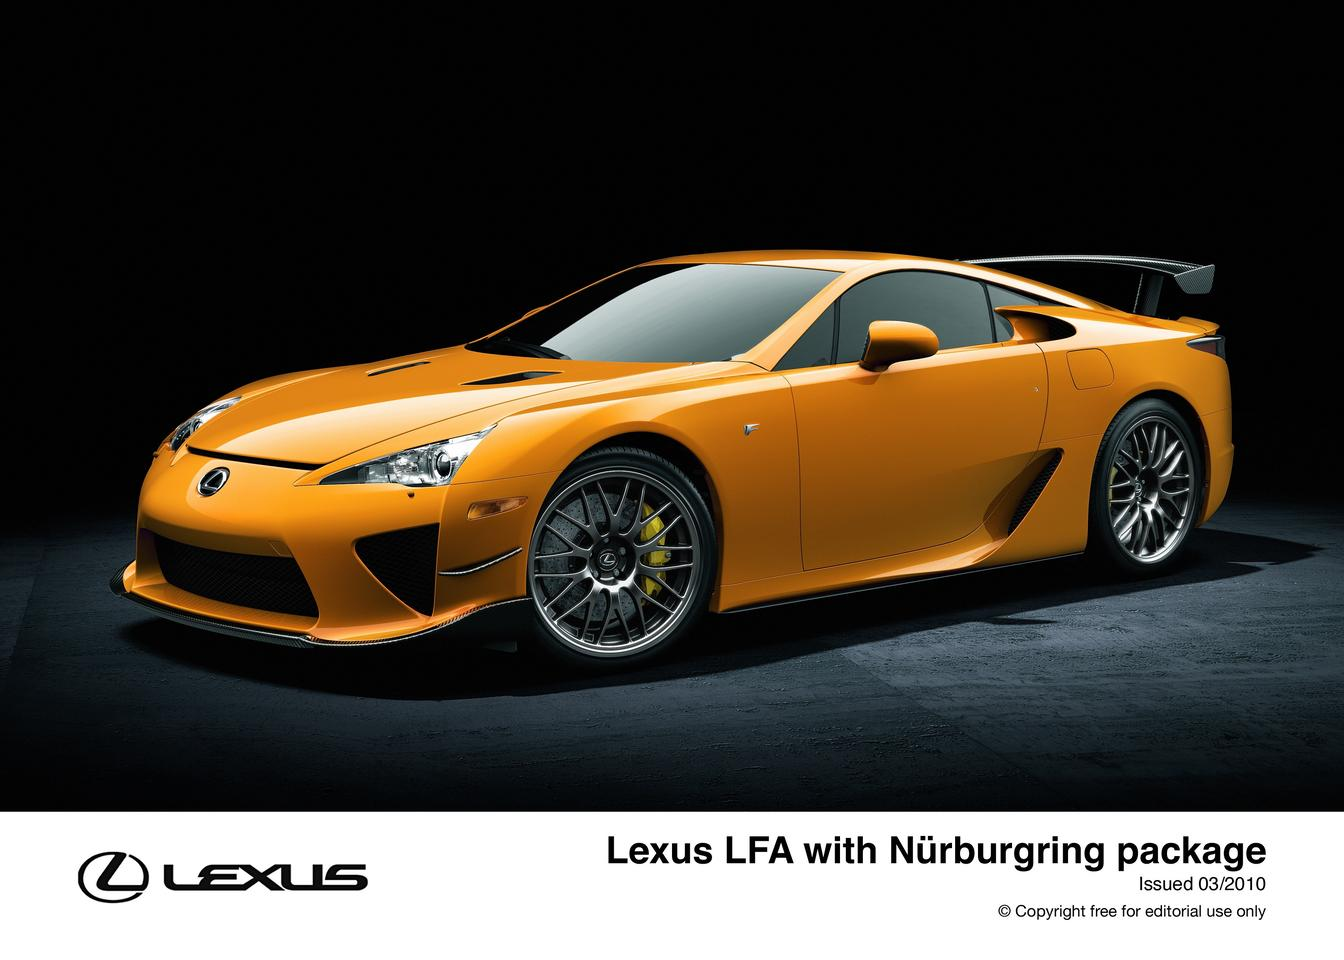 The Lexus LFA with a Nurburgring kit which adds a lot more than just good looks